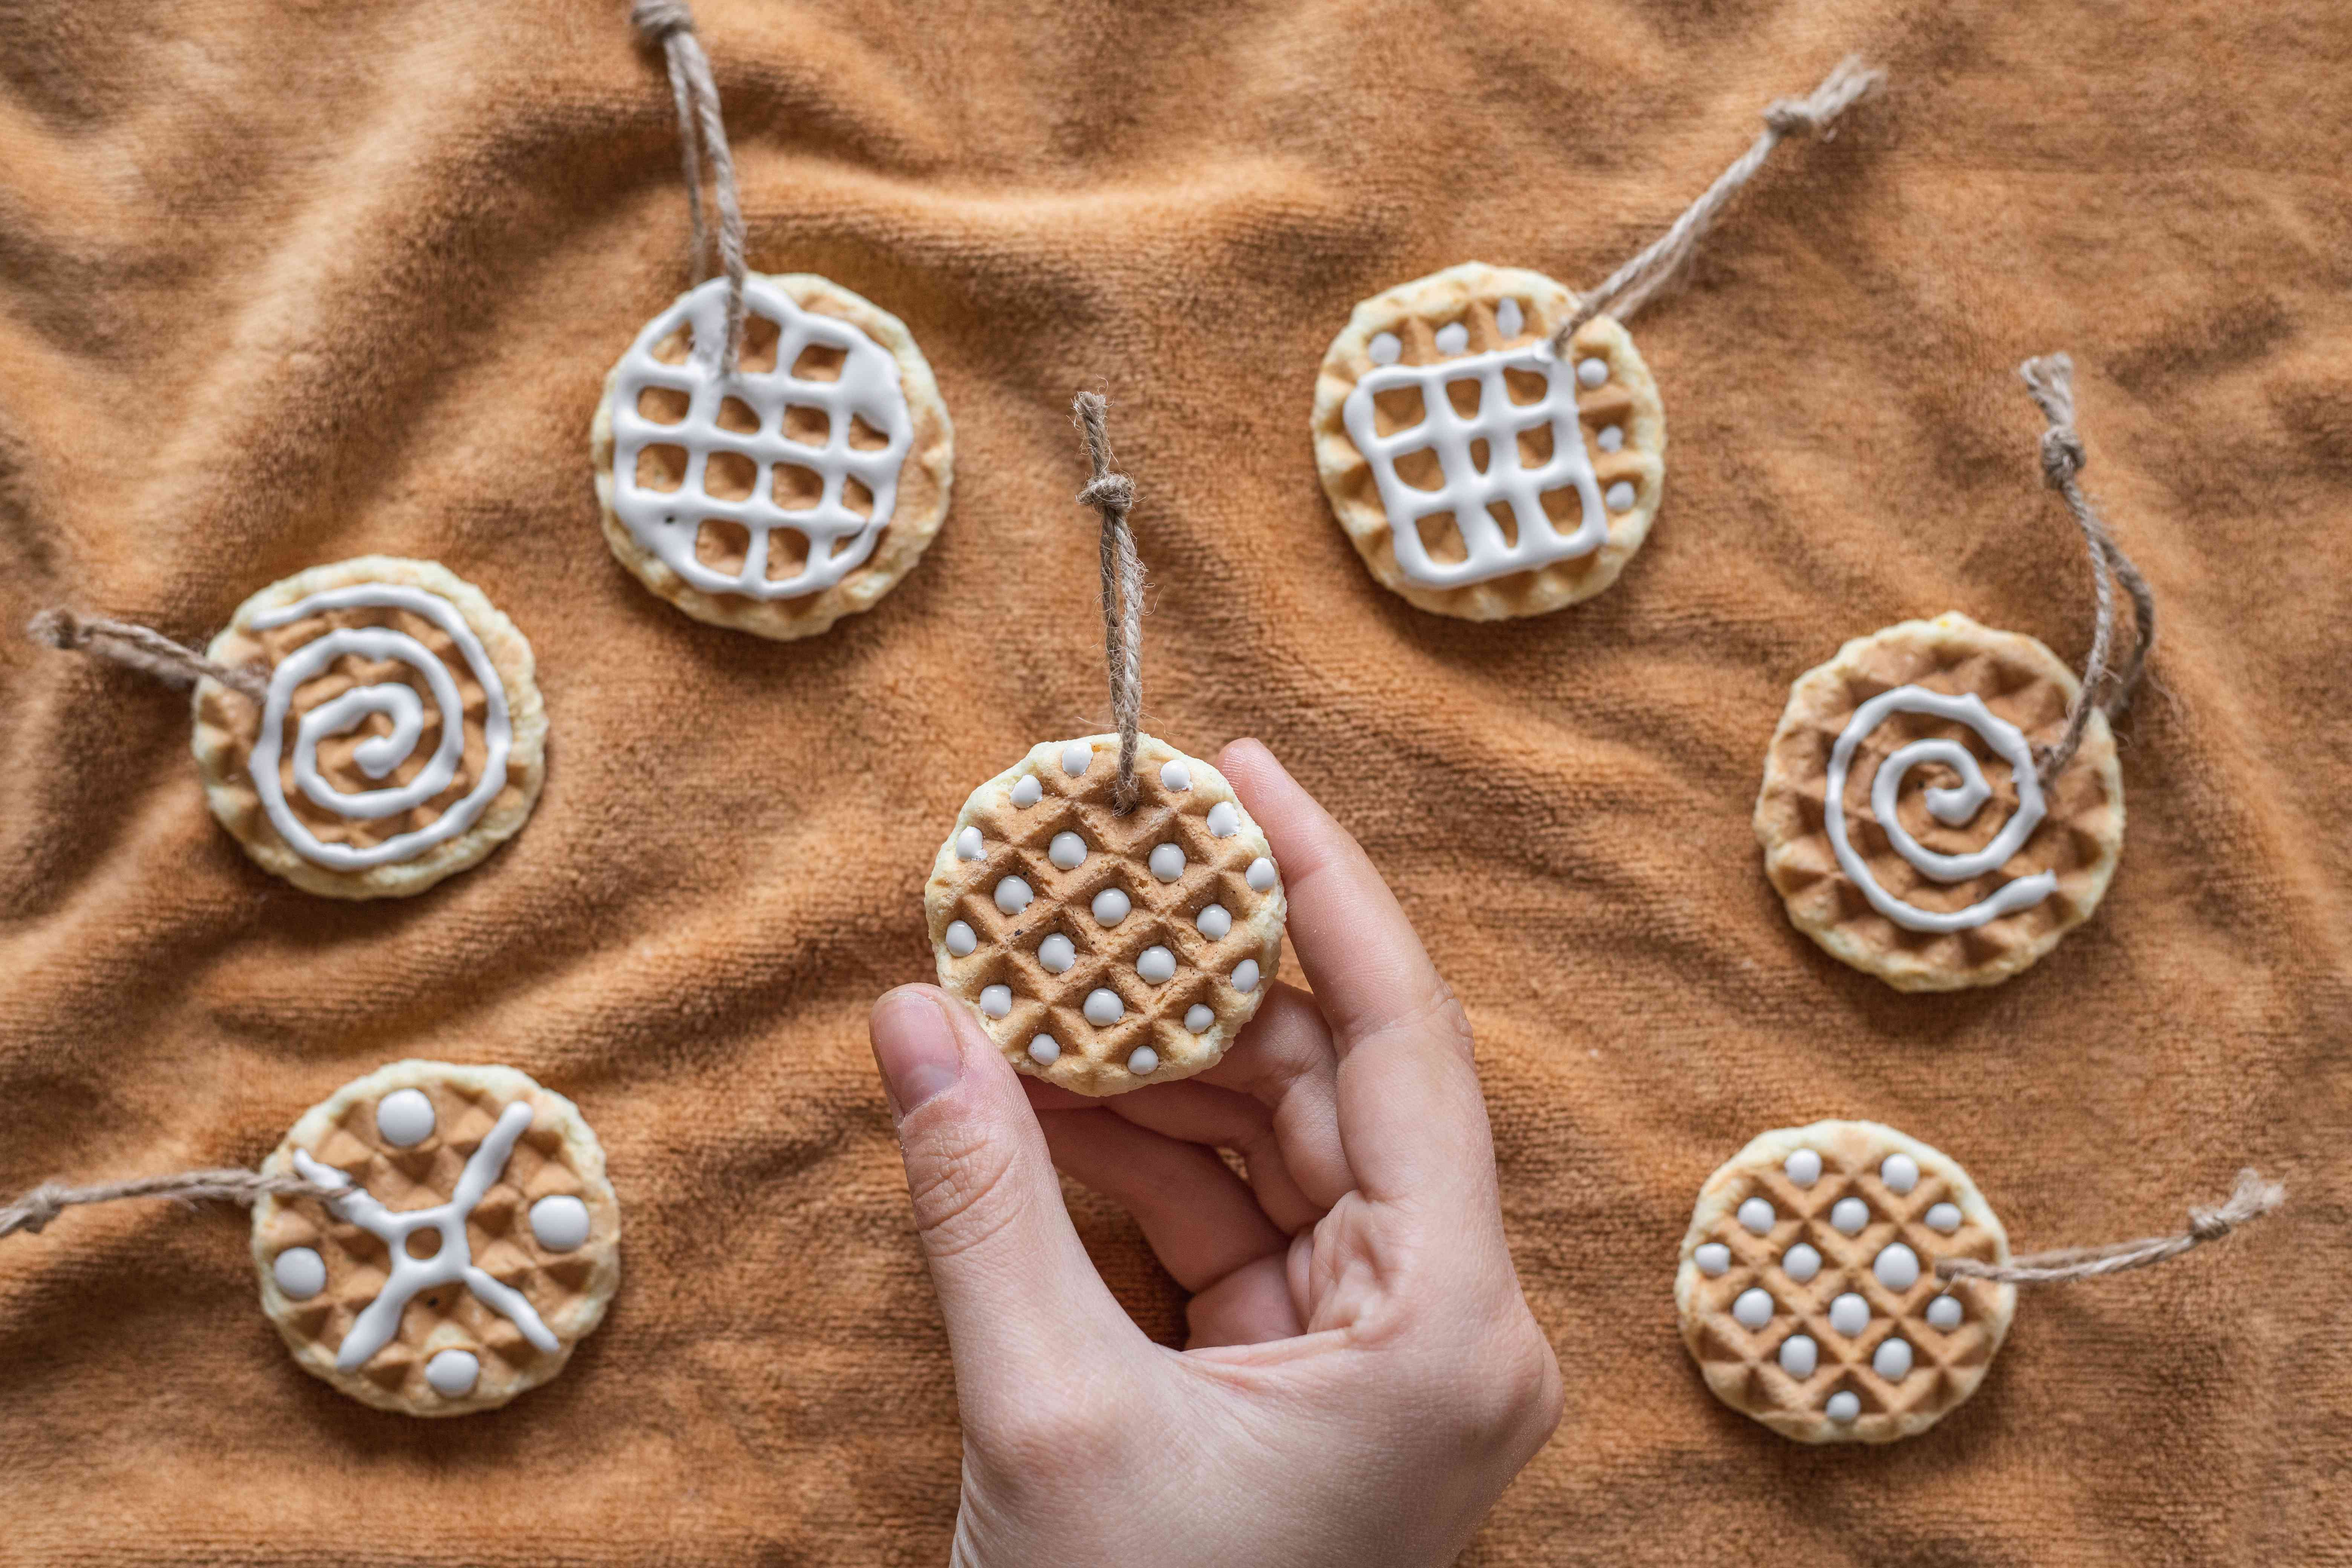 various homemade christmas ornaments made out of expired spices displayed on tan towel